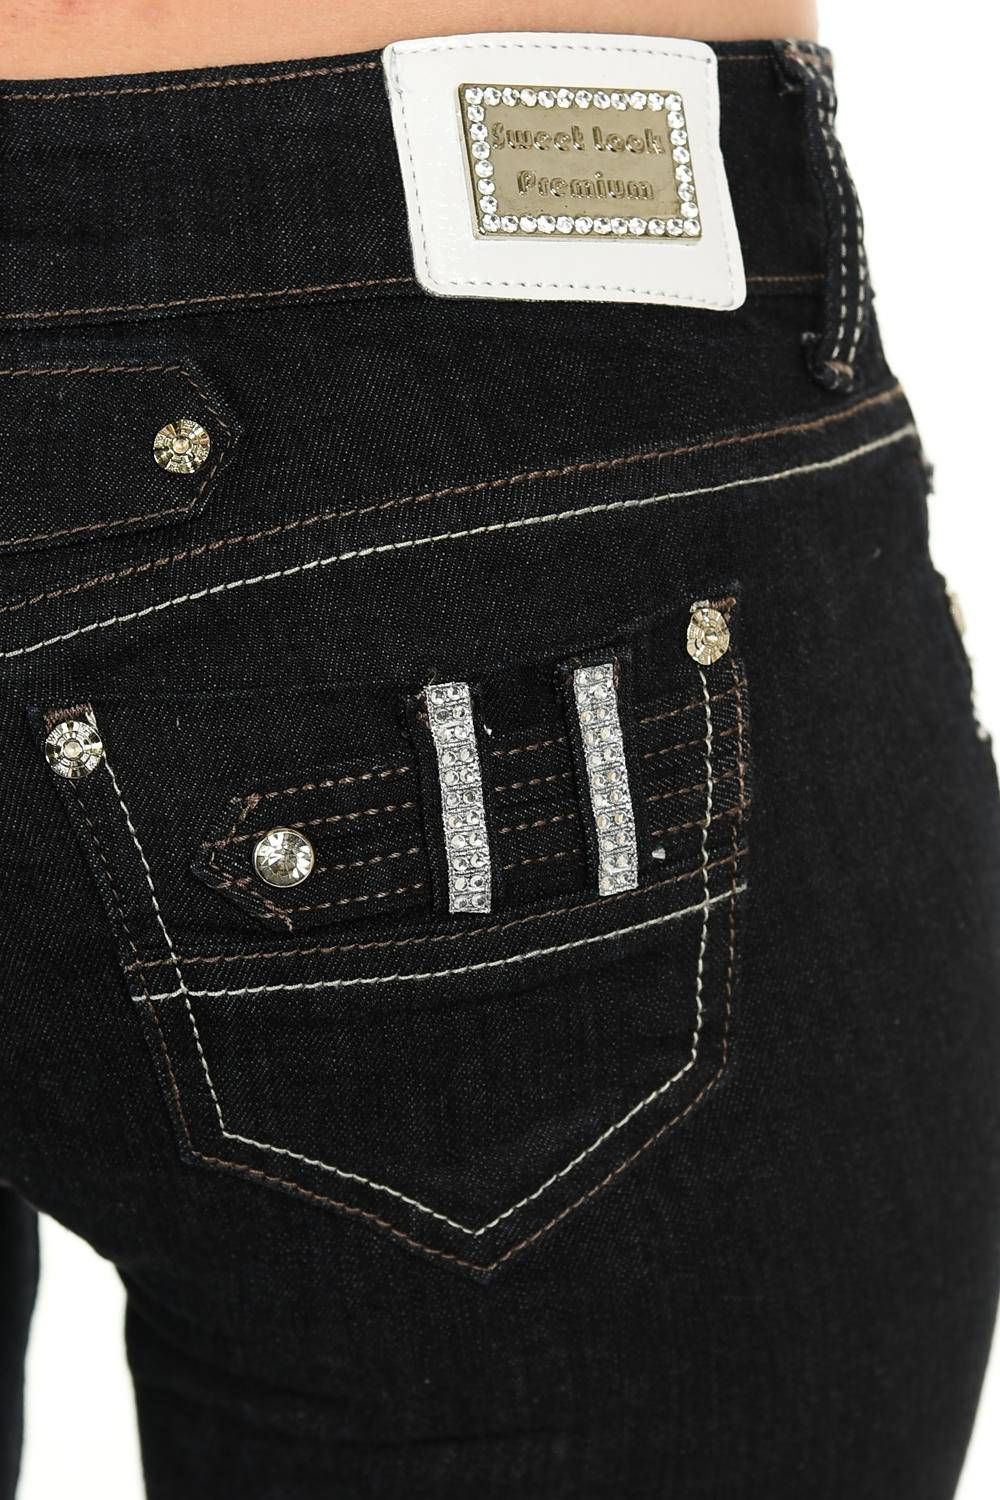 Sweet Look Premium Edition Jeans